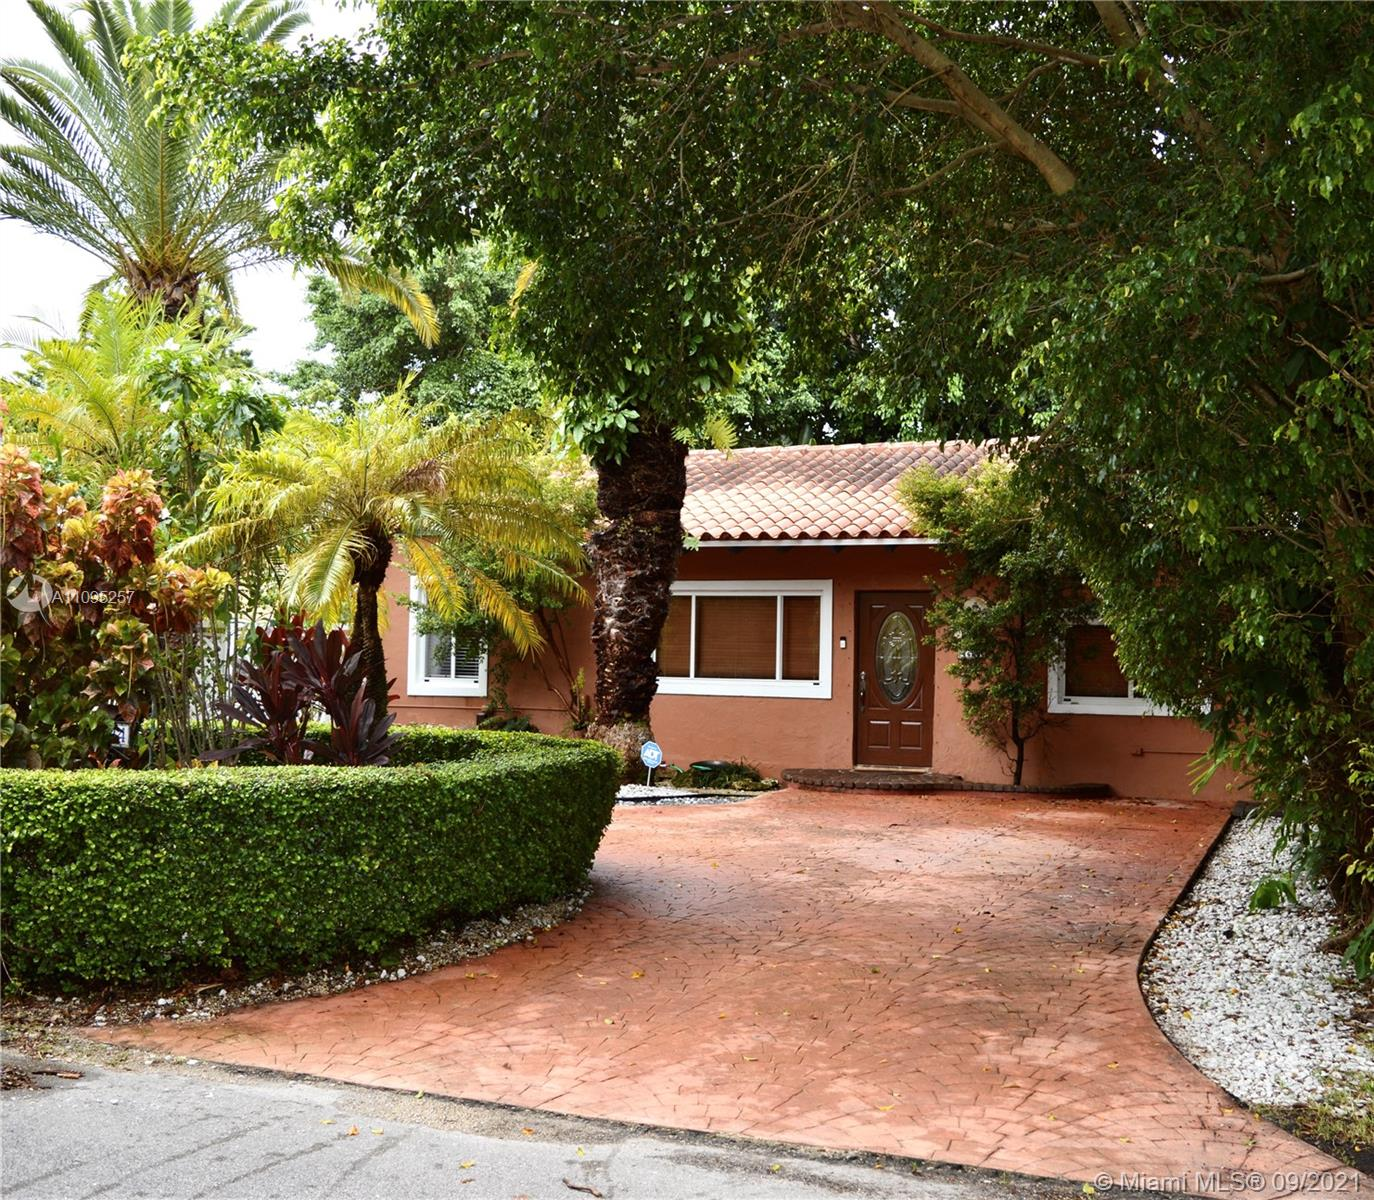 4624 SW 11th St, Coral Gables, Florida 33134